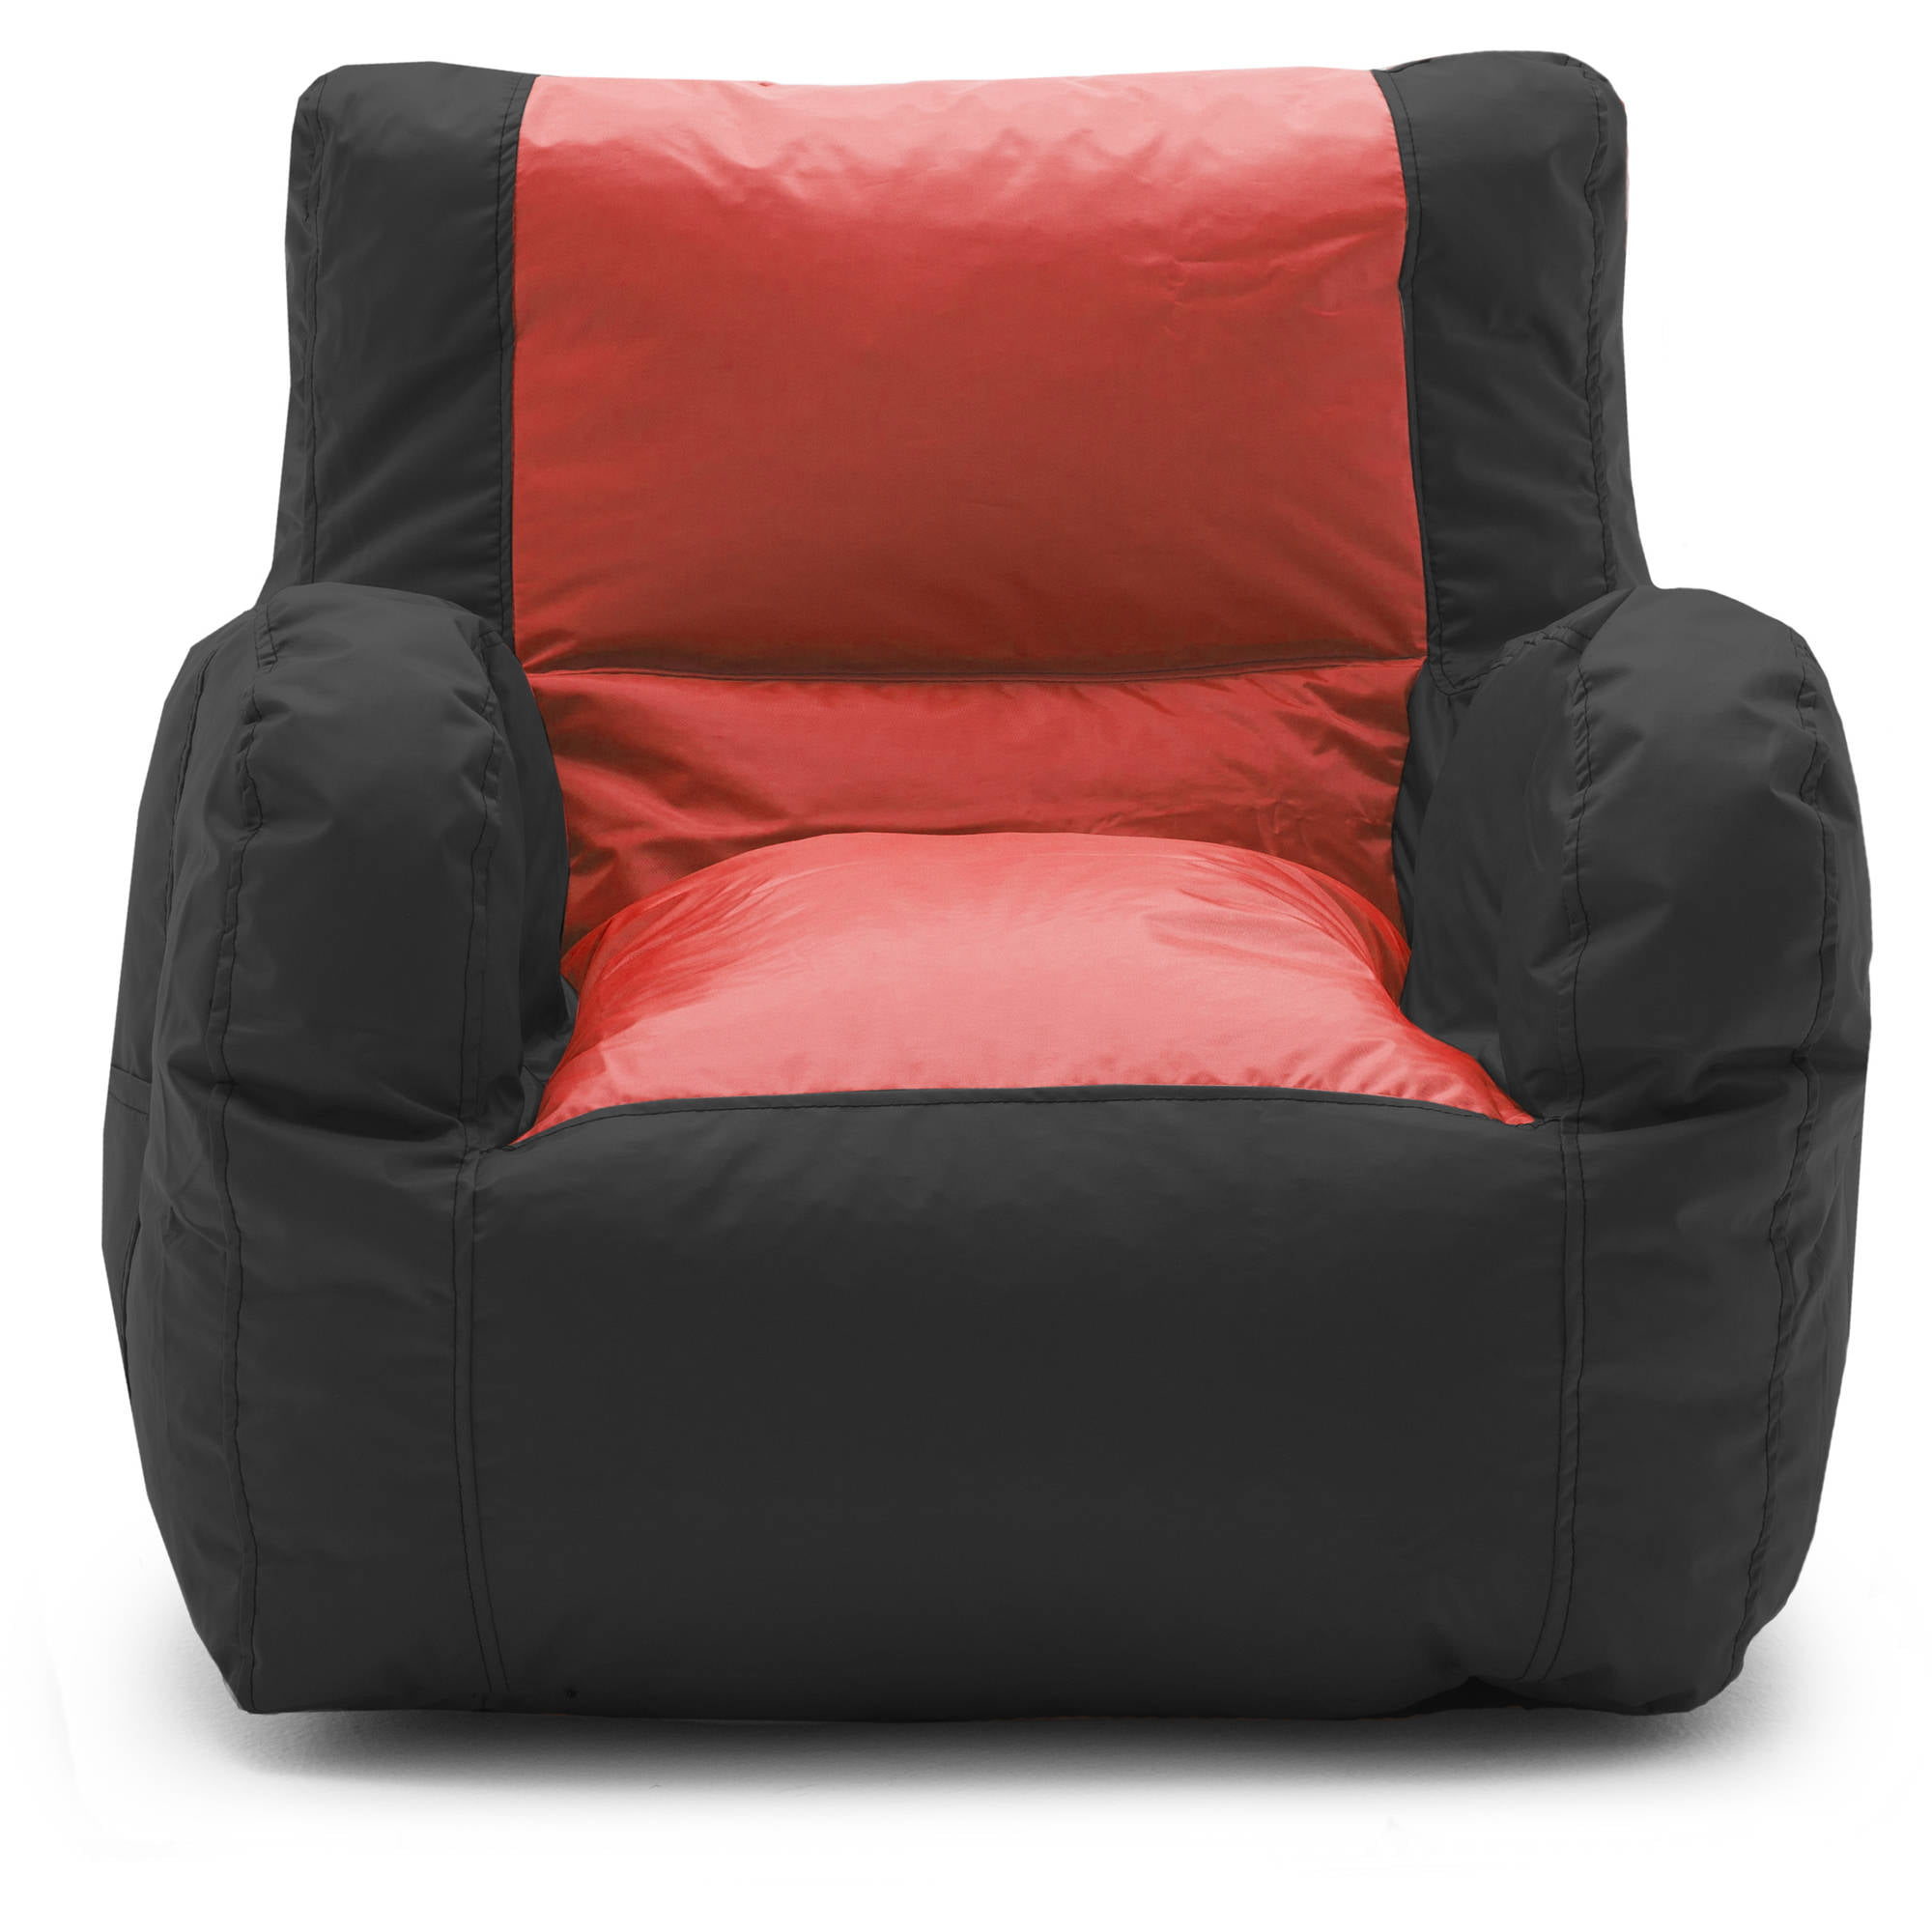 Your Zone Lux Shag Butterfly Chair, Multiple Colors   Walmart.com